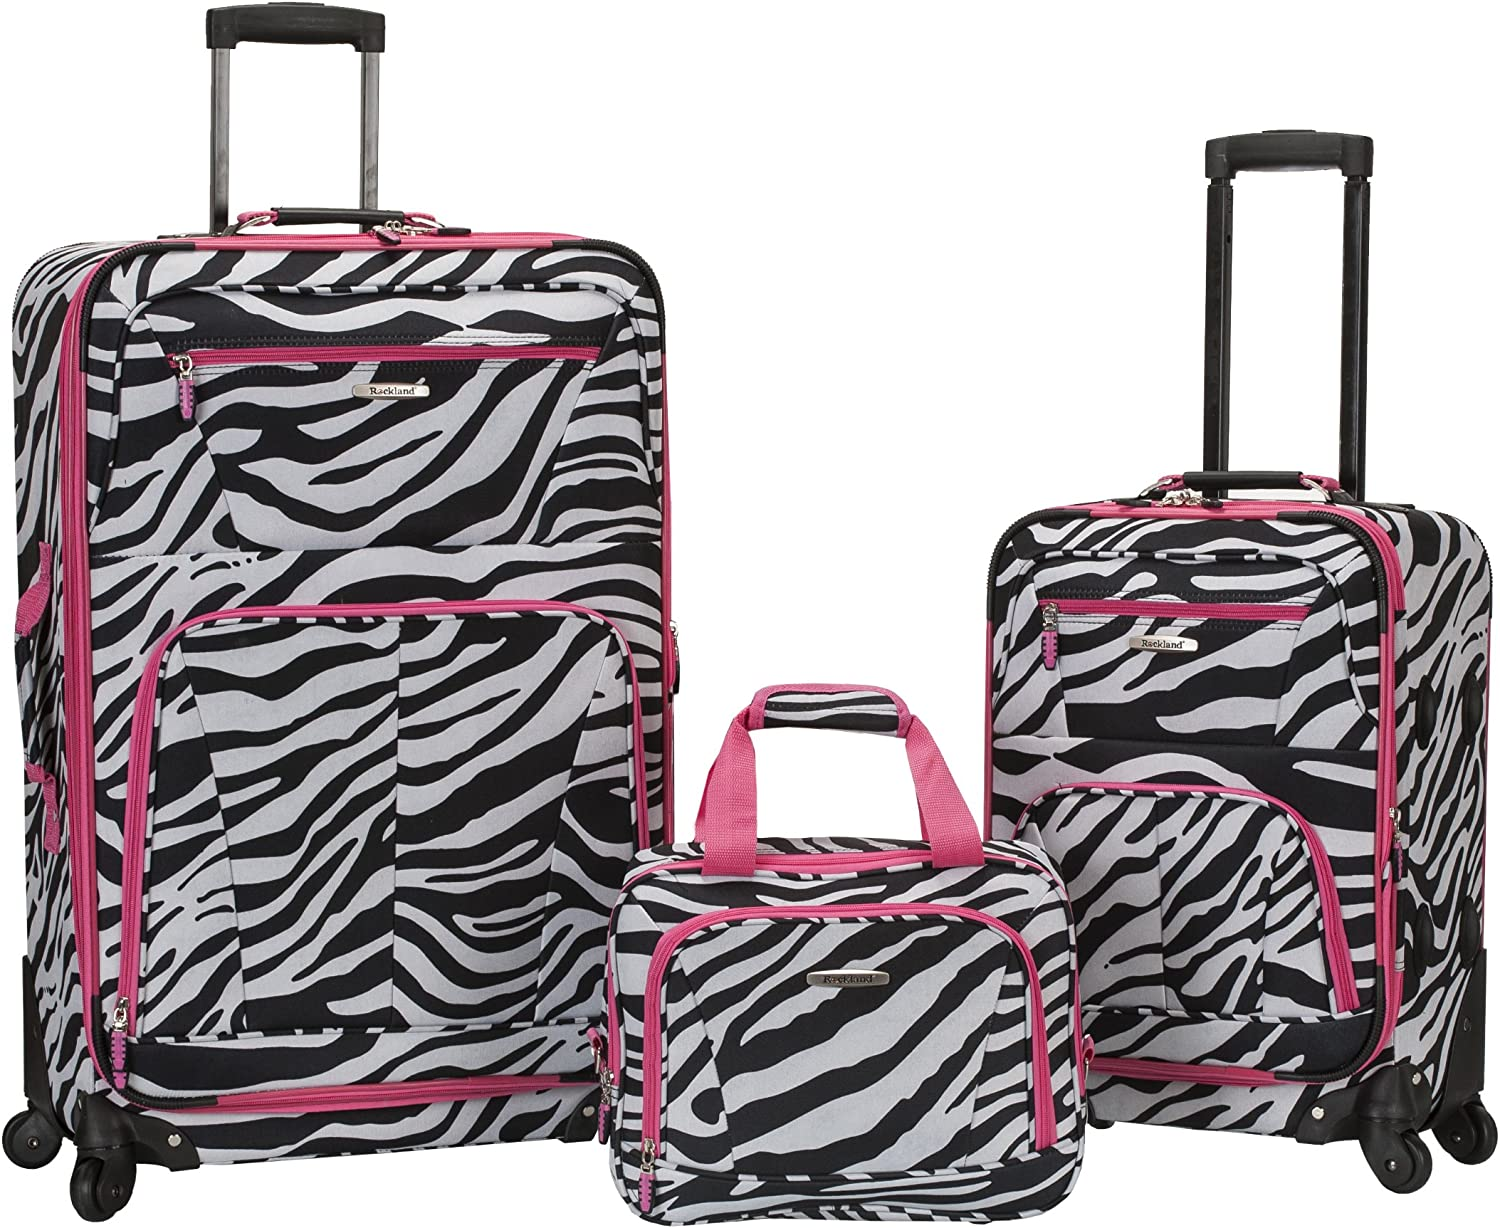 Rockland Pasadena Softside Spinner Wheel Luggage, Pink Zebra, 3-Piece Set (14/20/28)